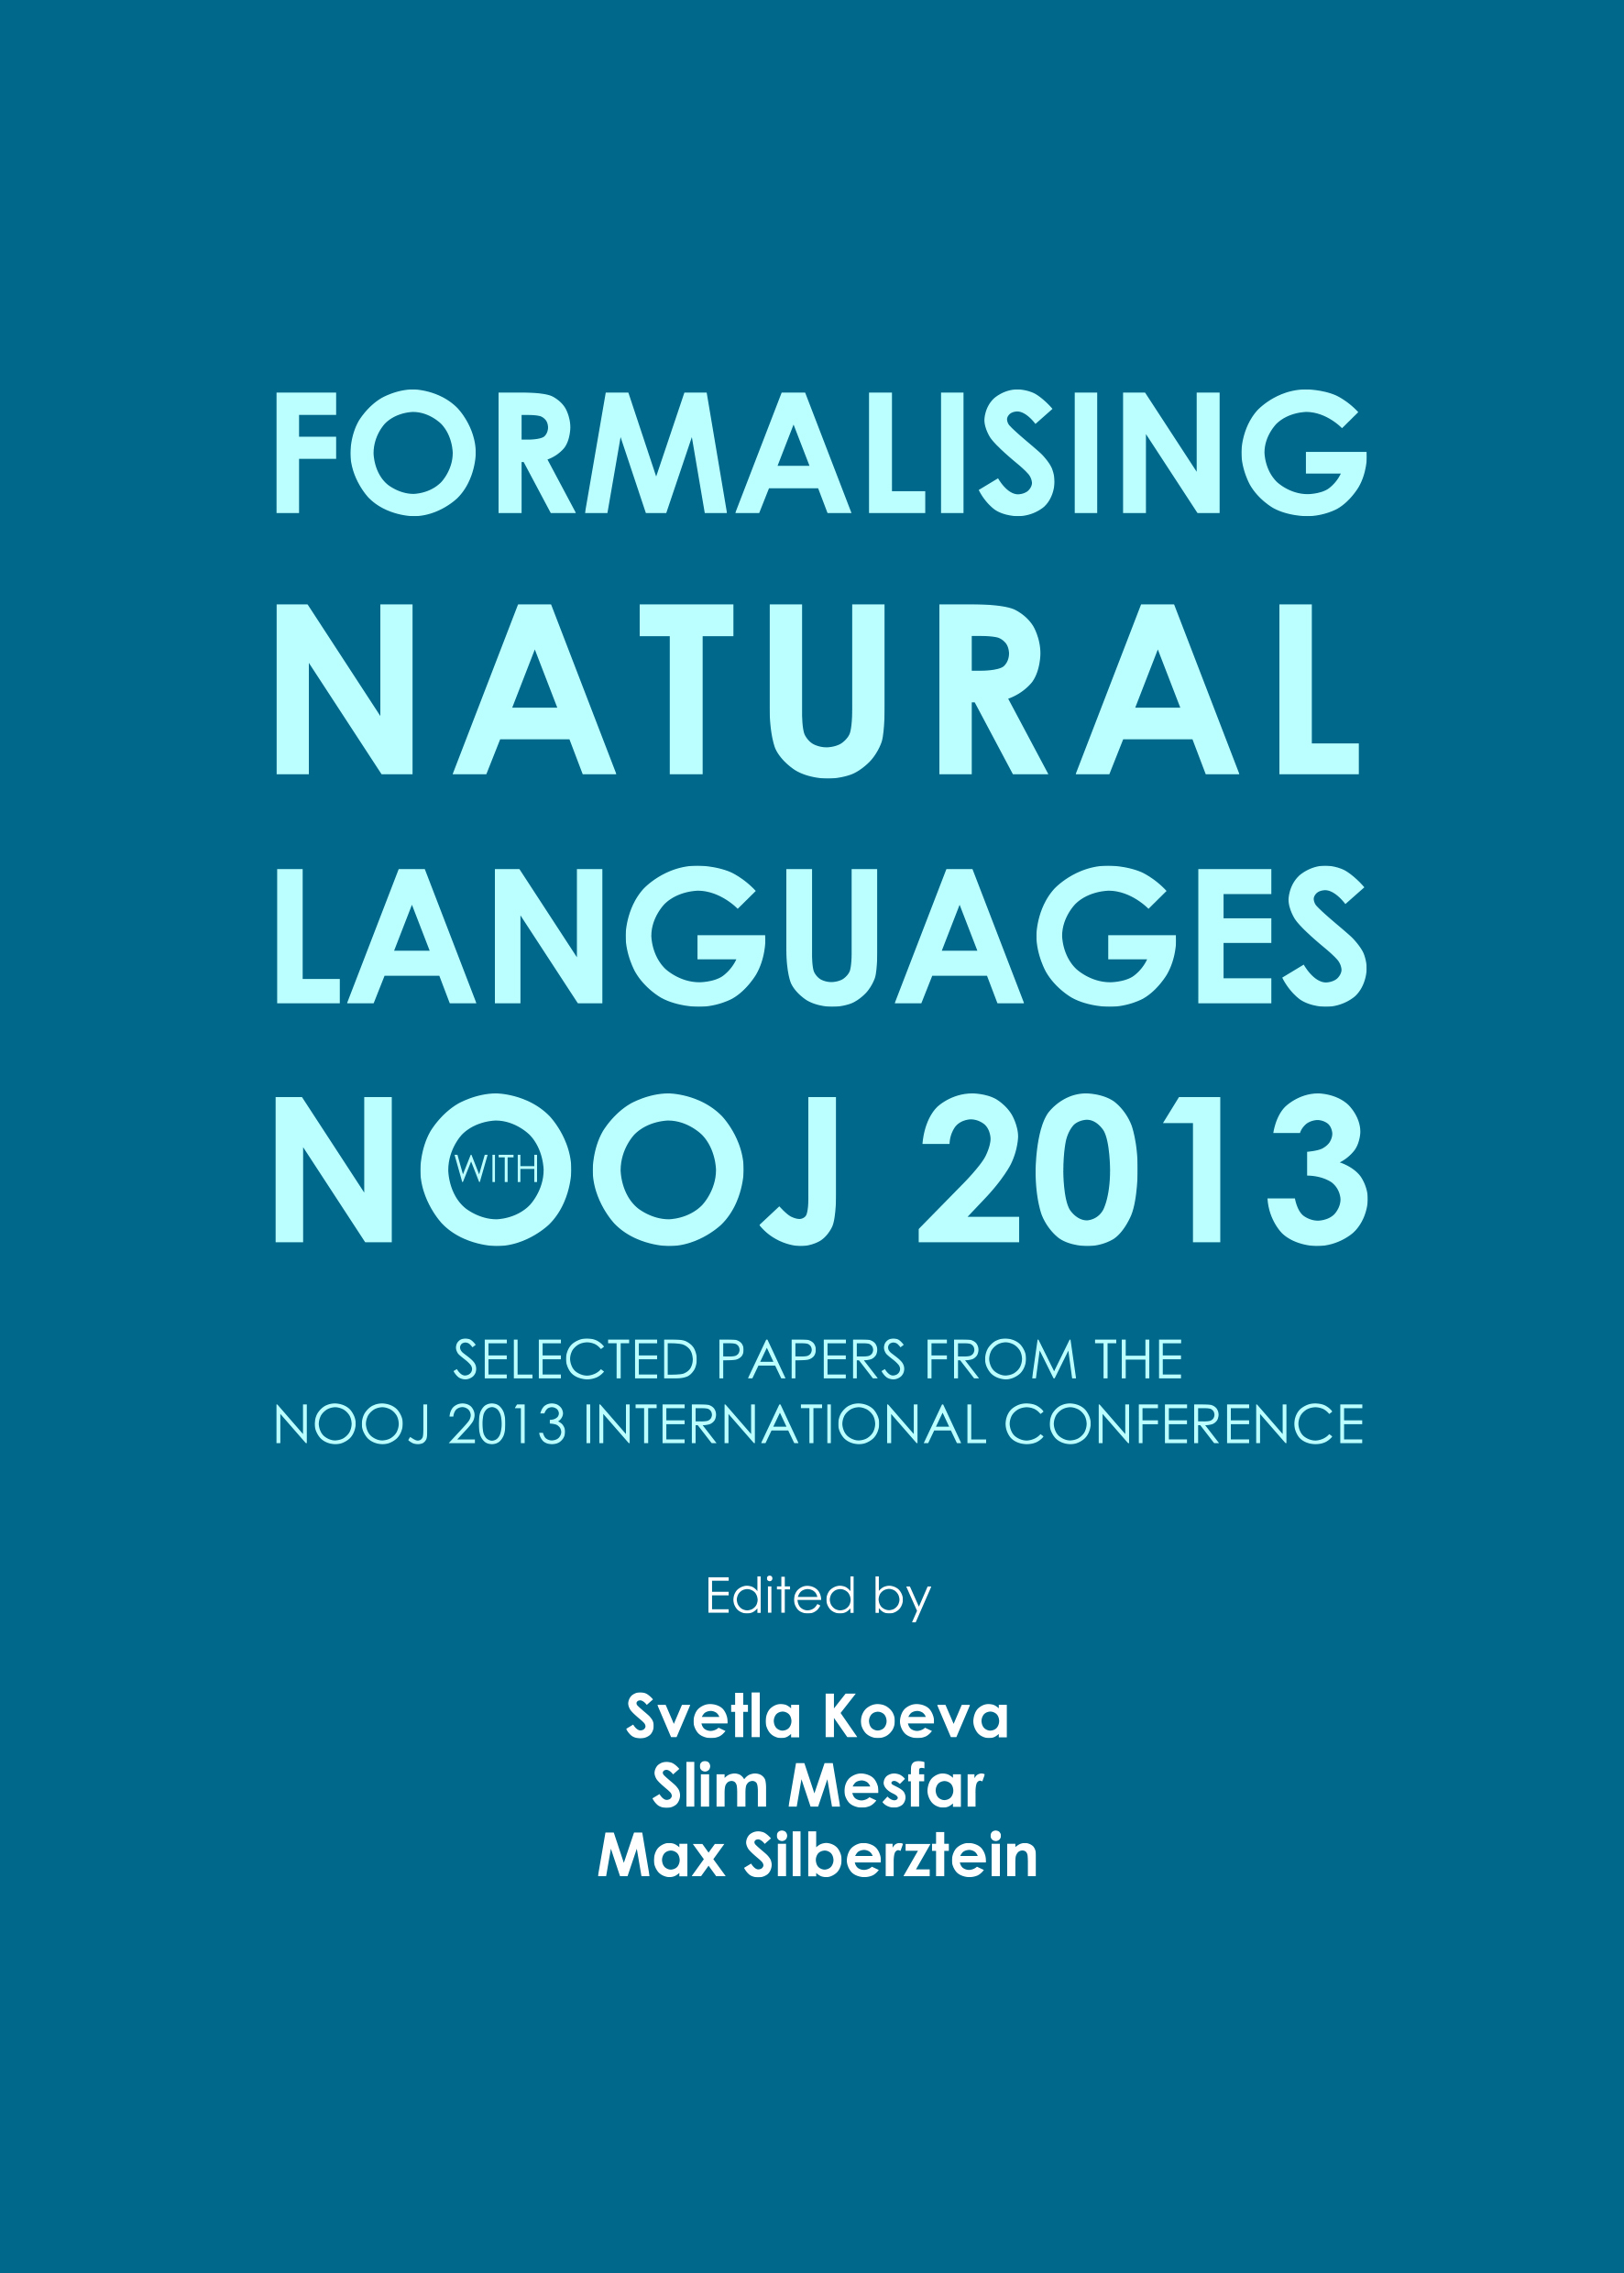 Formalising Natural Languages with NooJ 2013: Selected papers from the NooJ 2013 International Conference